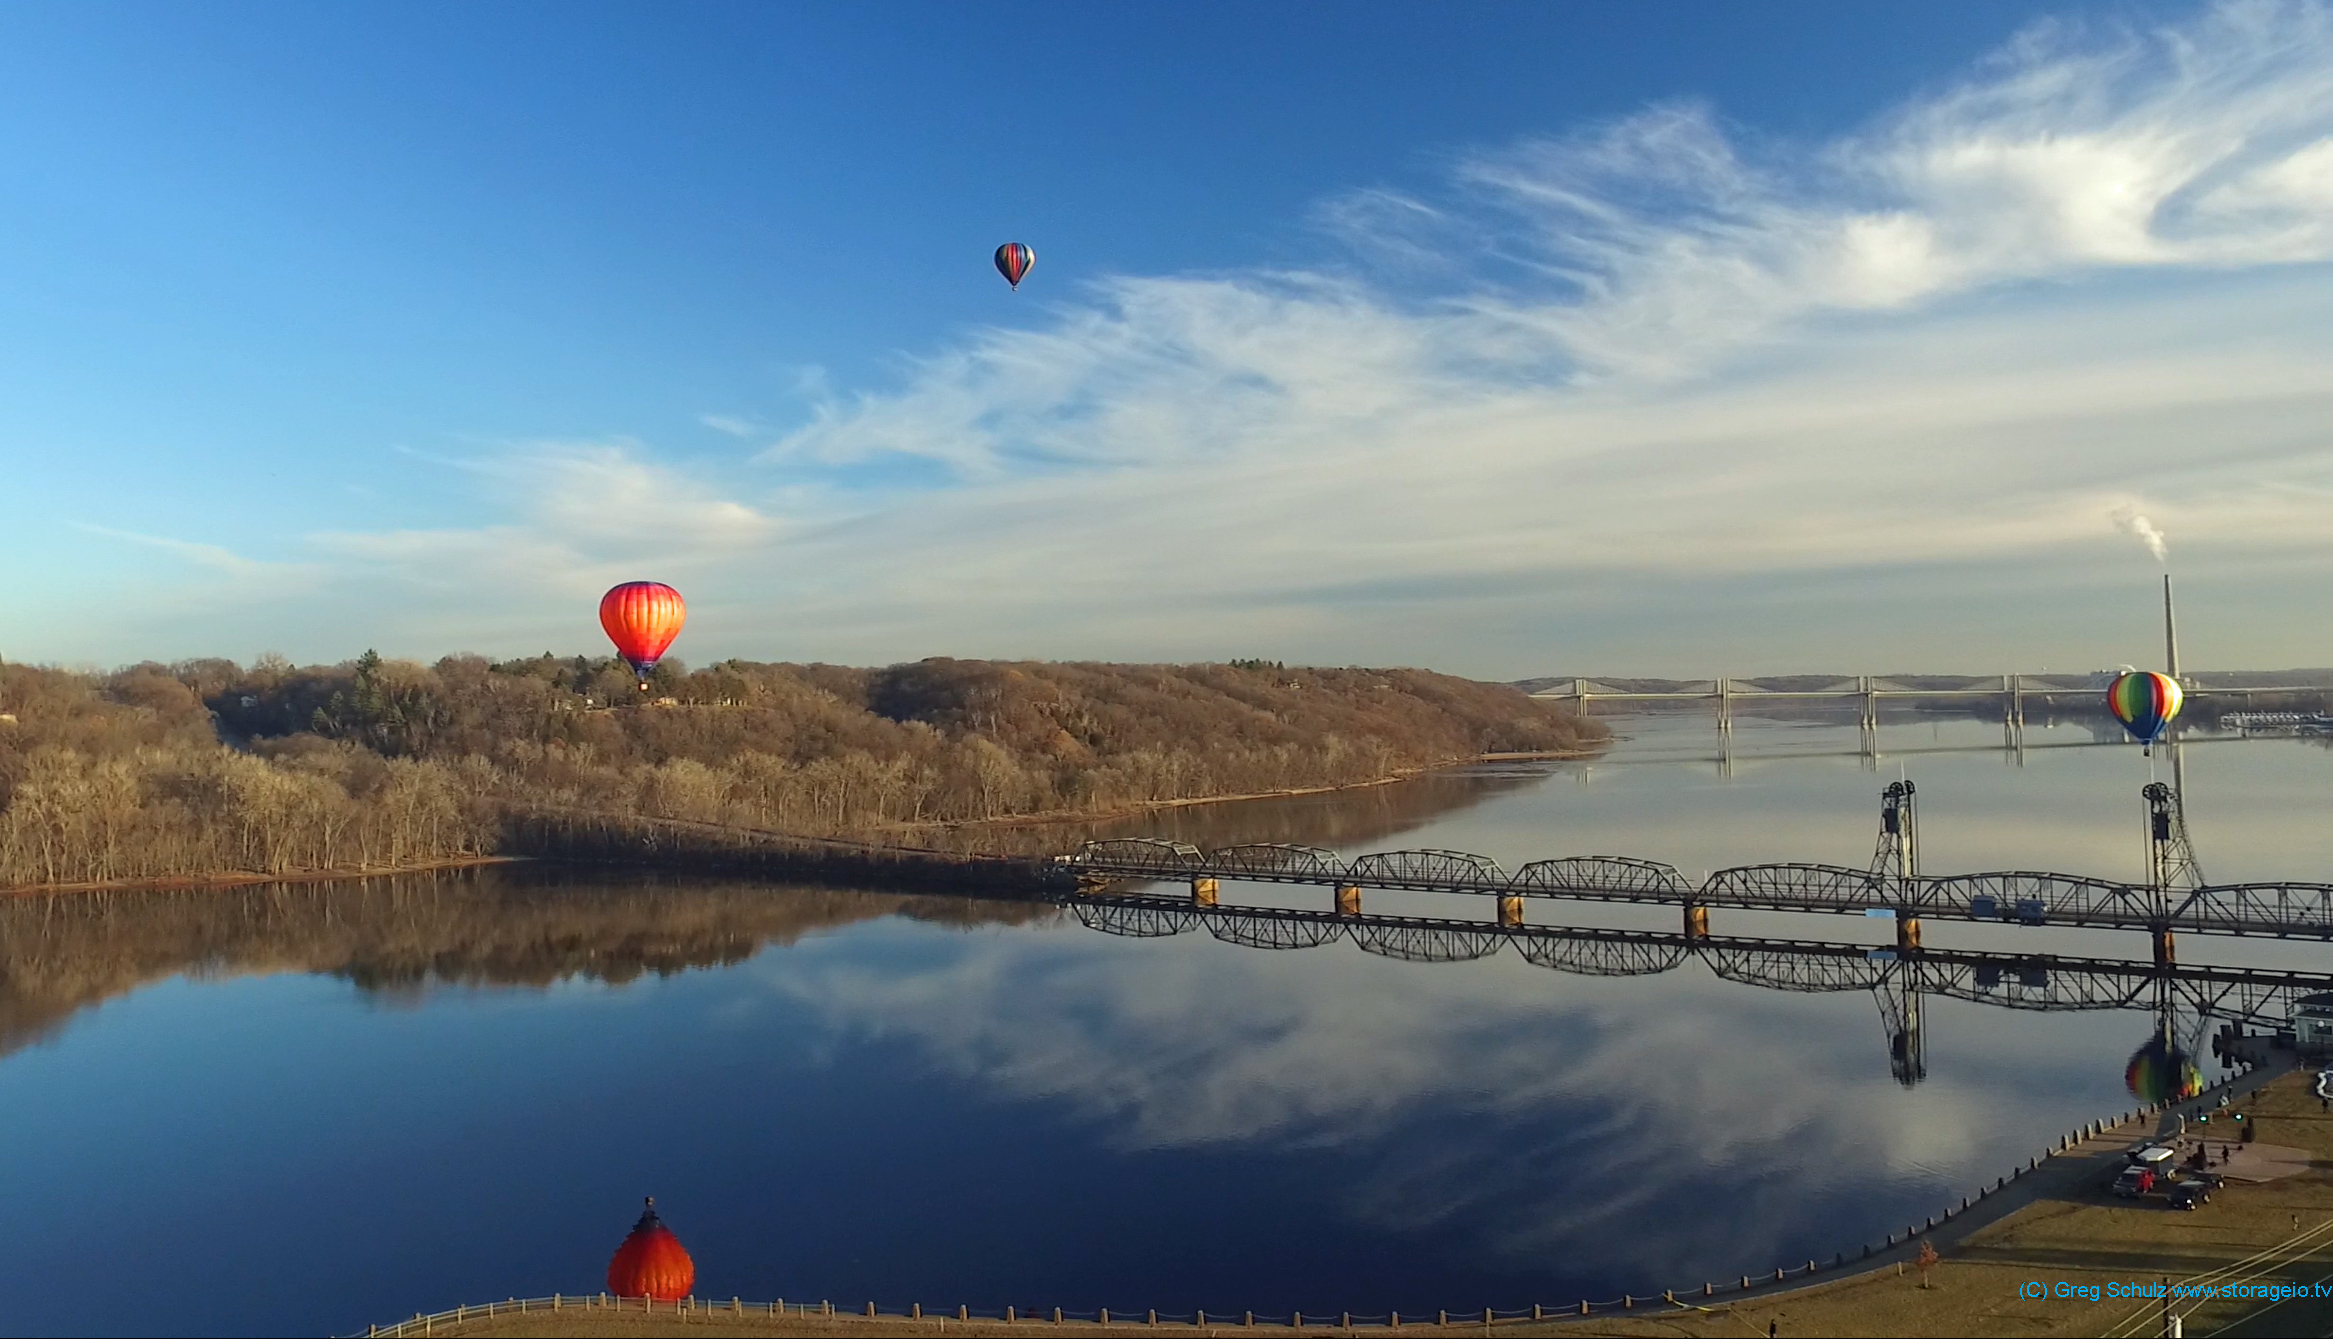 Hot Air Ballons over St. Croix river December 2017